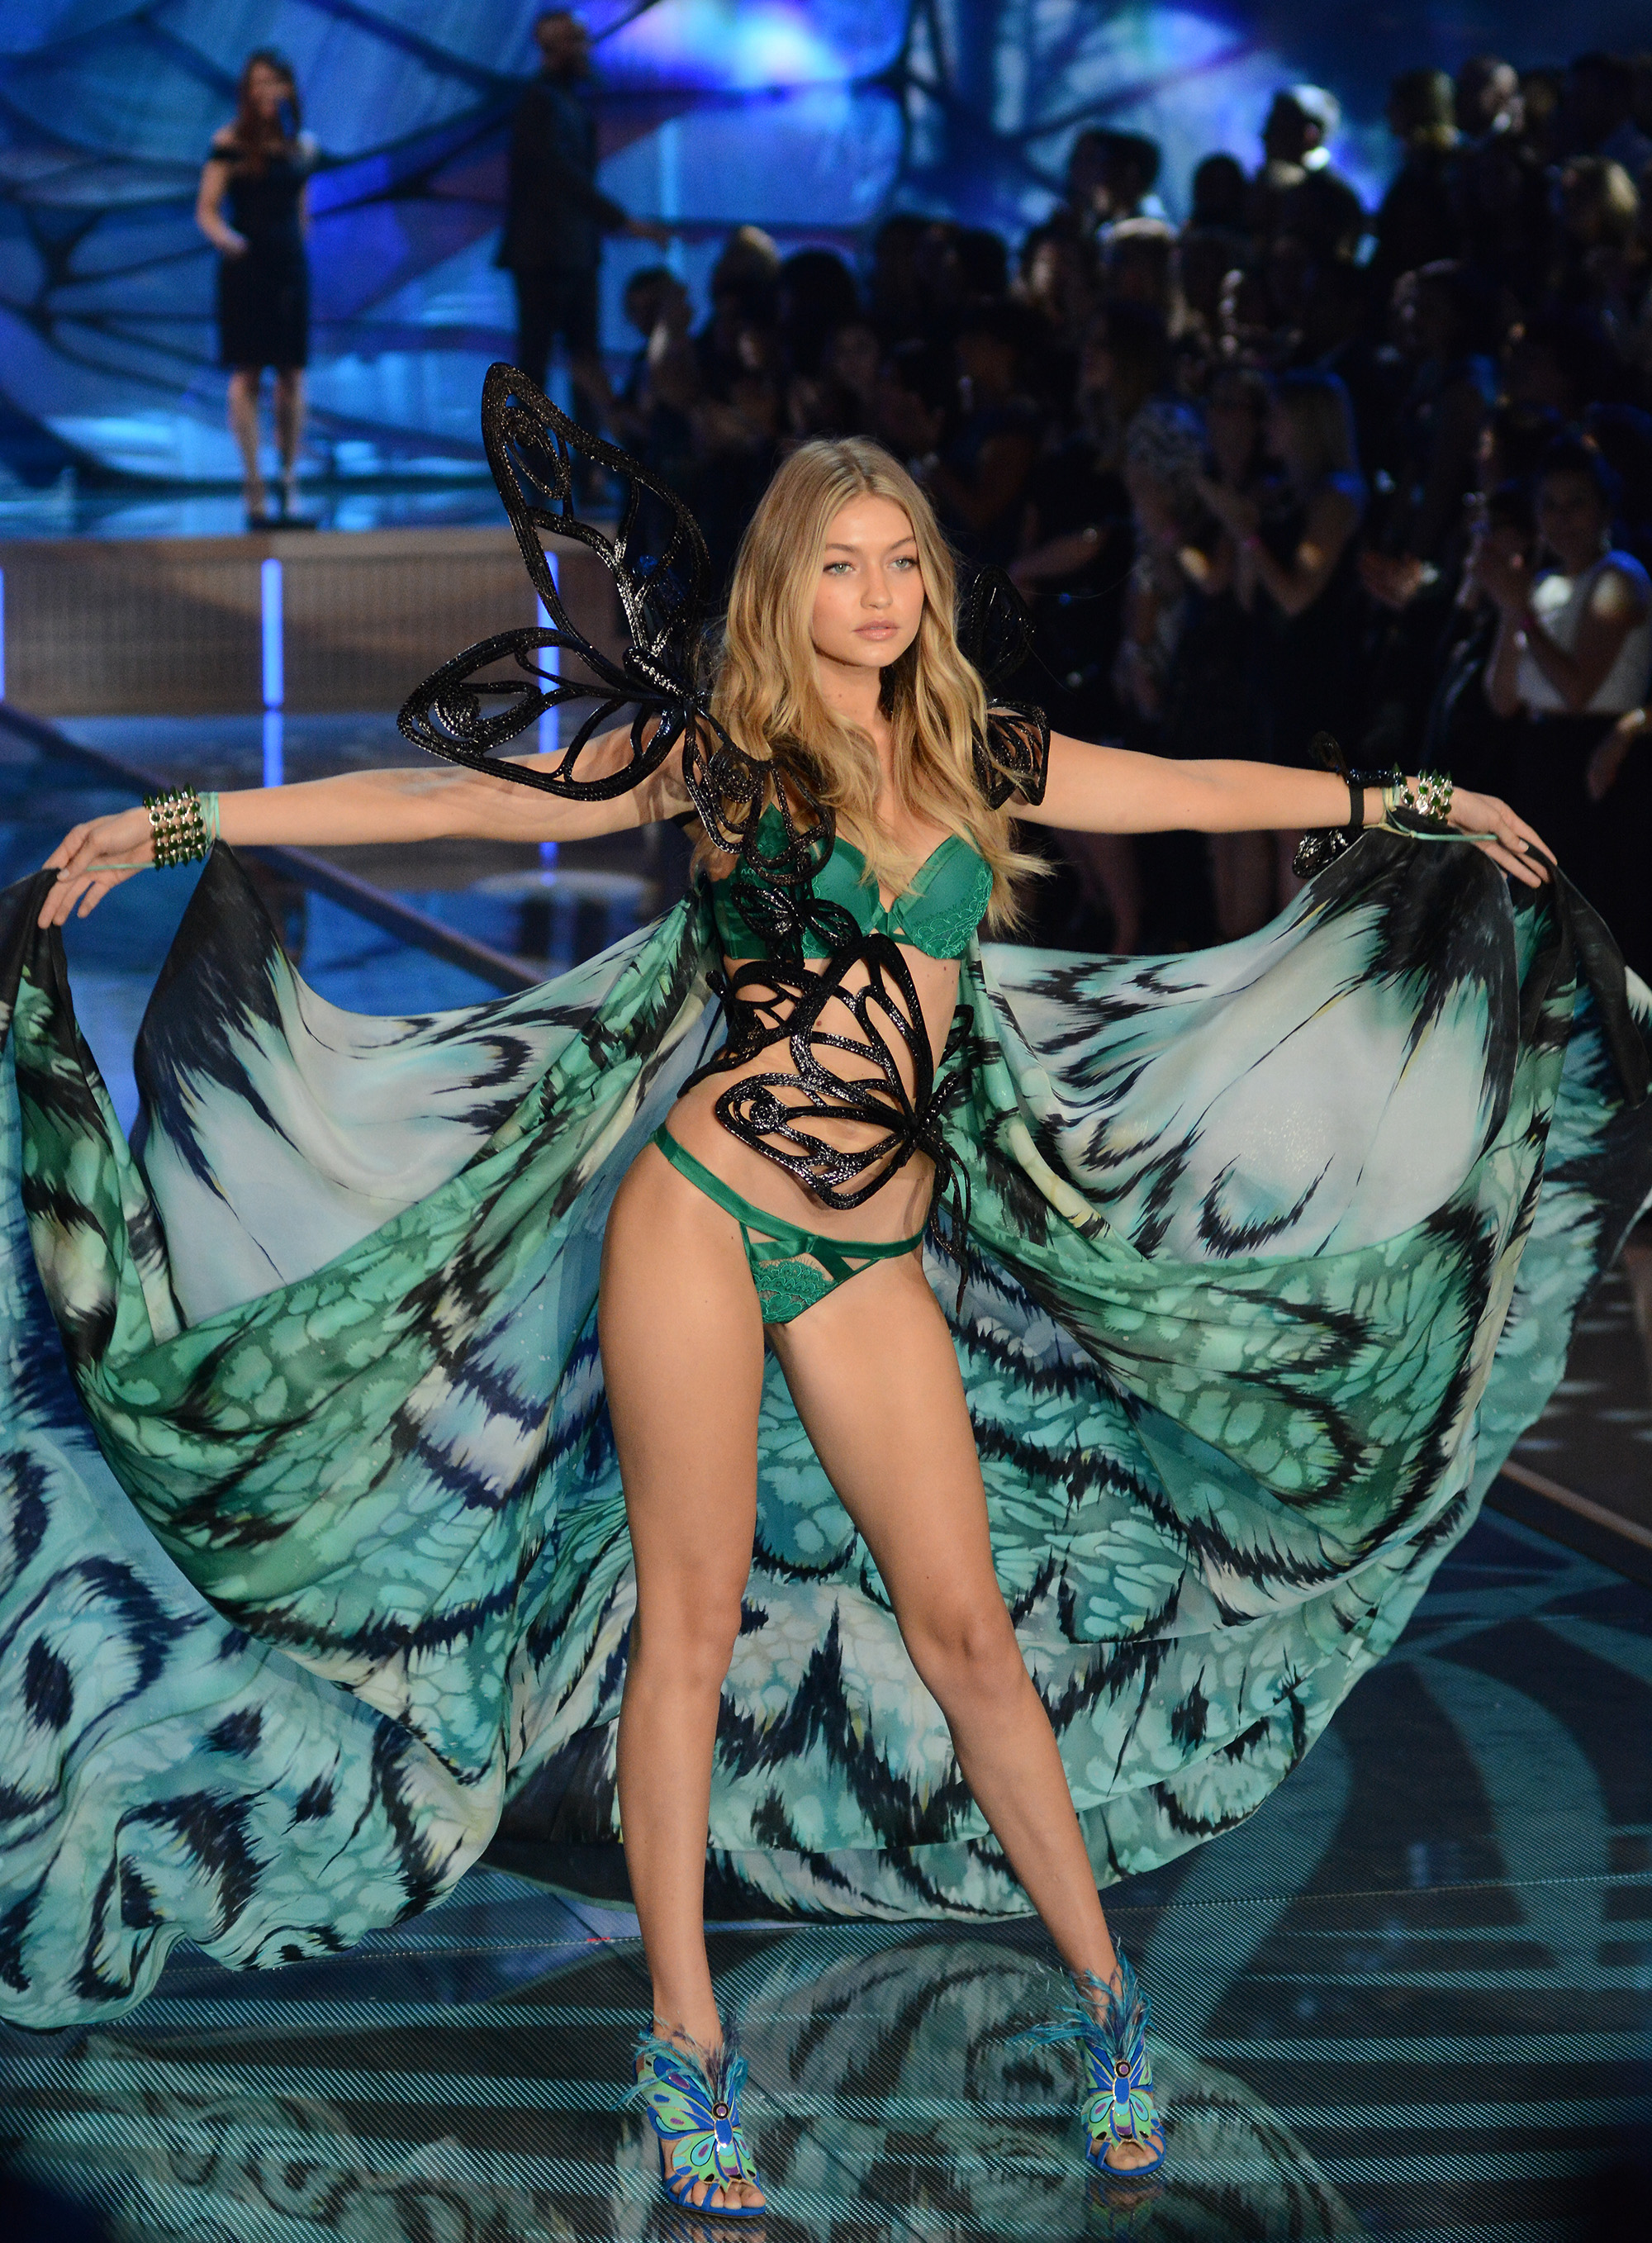 Gigi Hadid at the 2015 Victoria's Secret Fashion Show (Ivan Nikolov/WENN.com)